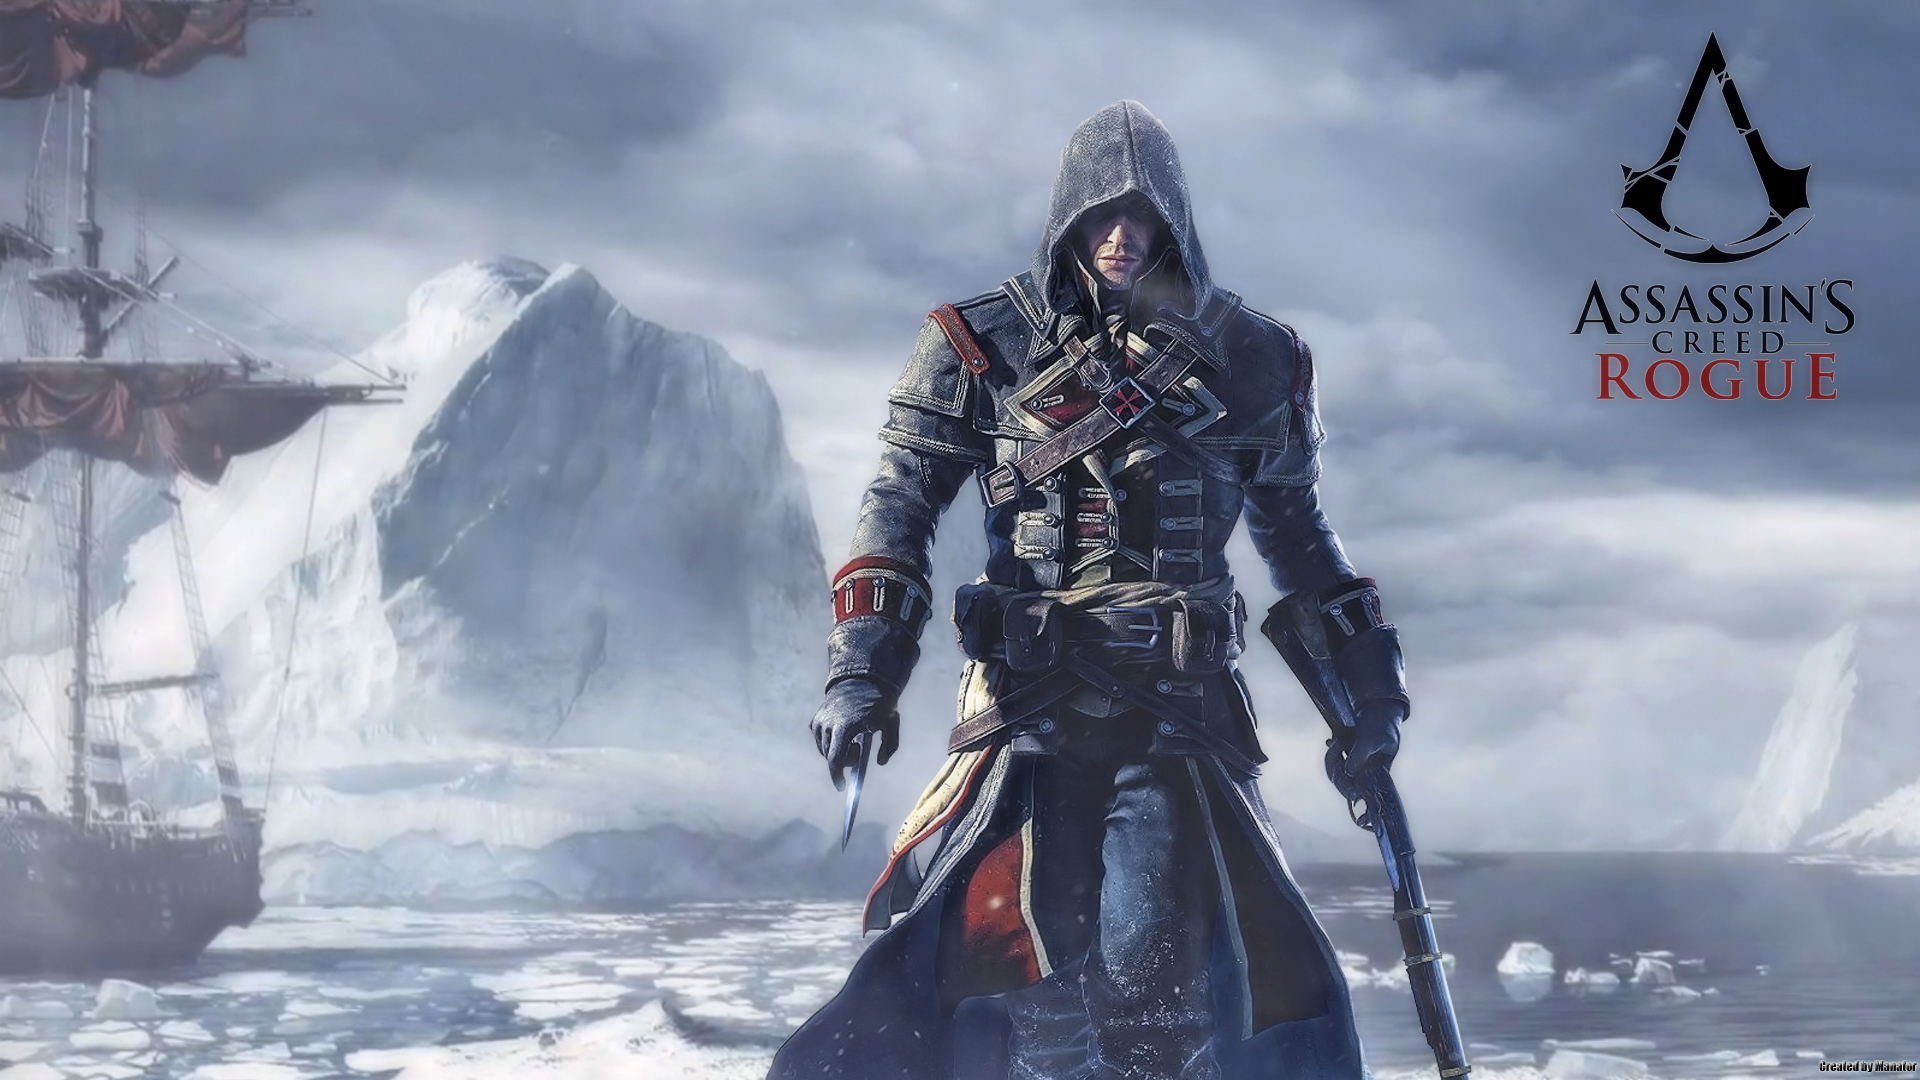 Assassins Creed Rogue Wallpaper   wallpaper 1920x1080